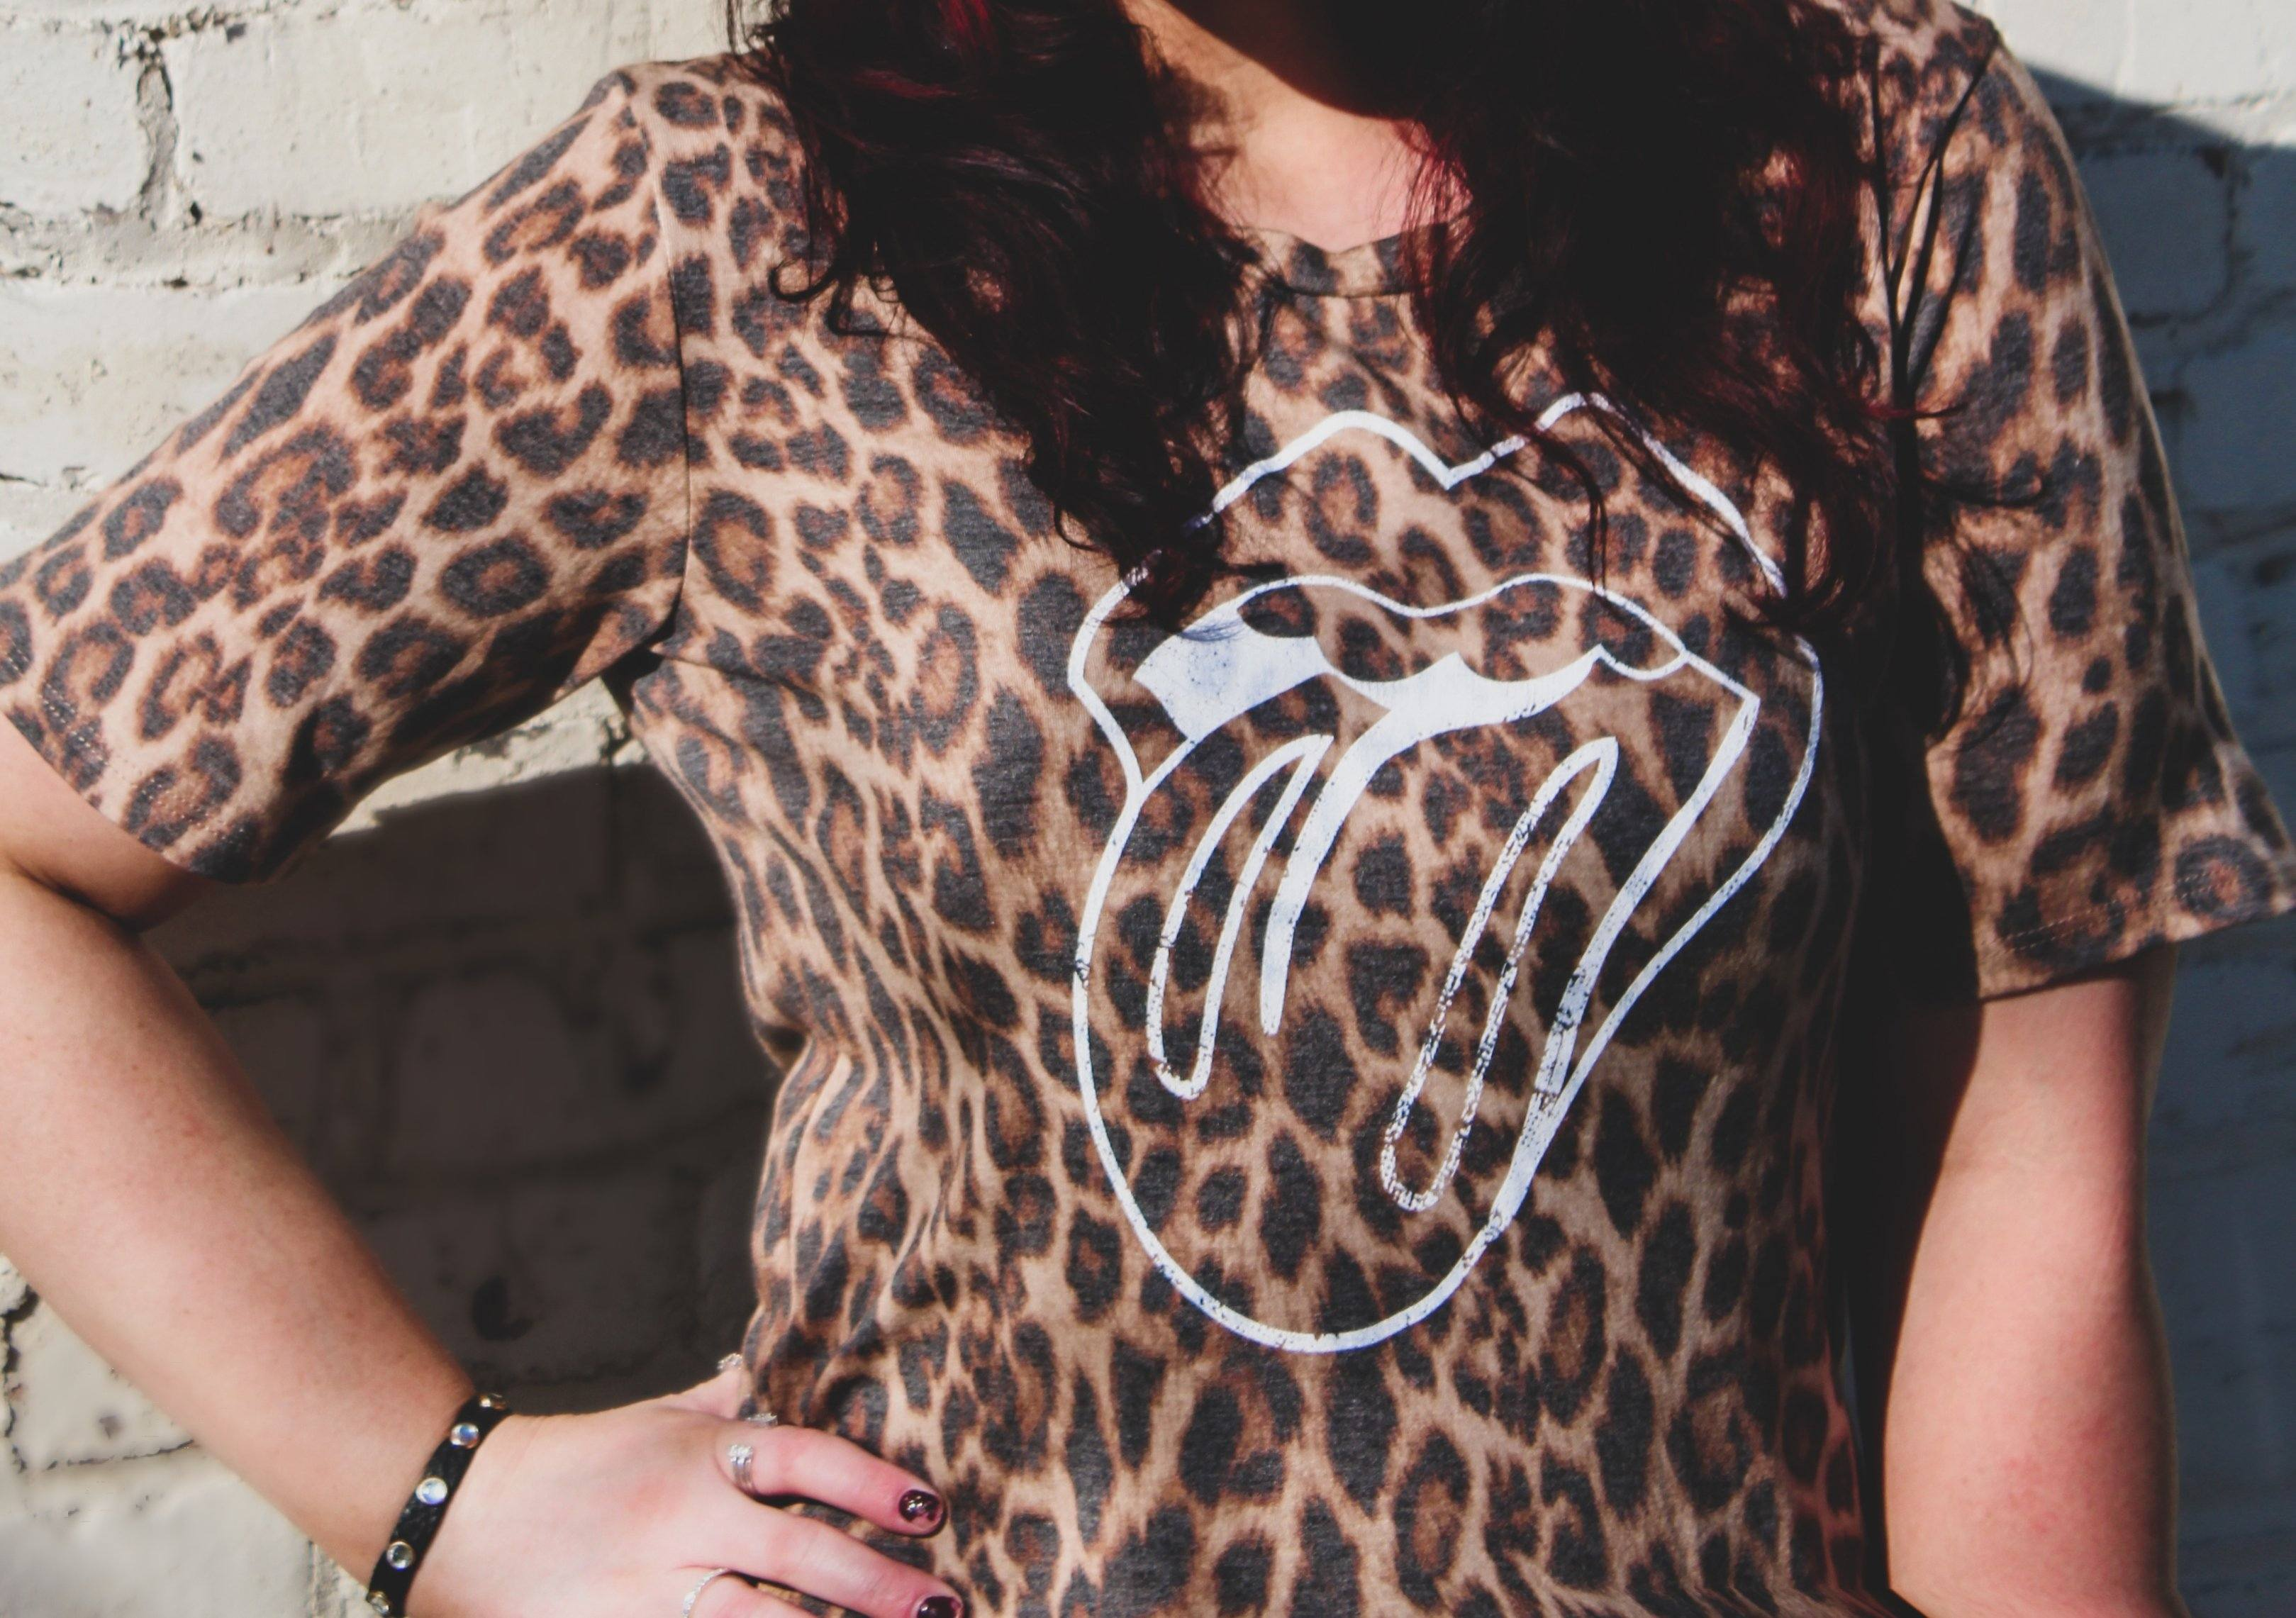 Rolling Stones Leopard Print Tee tops Nellie MAe